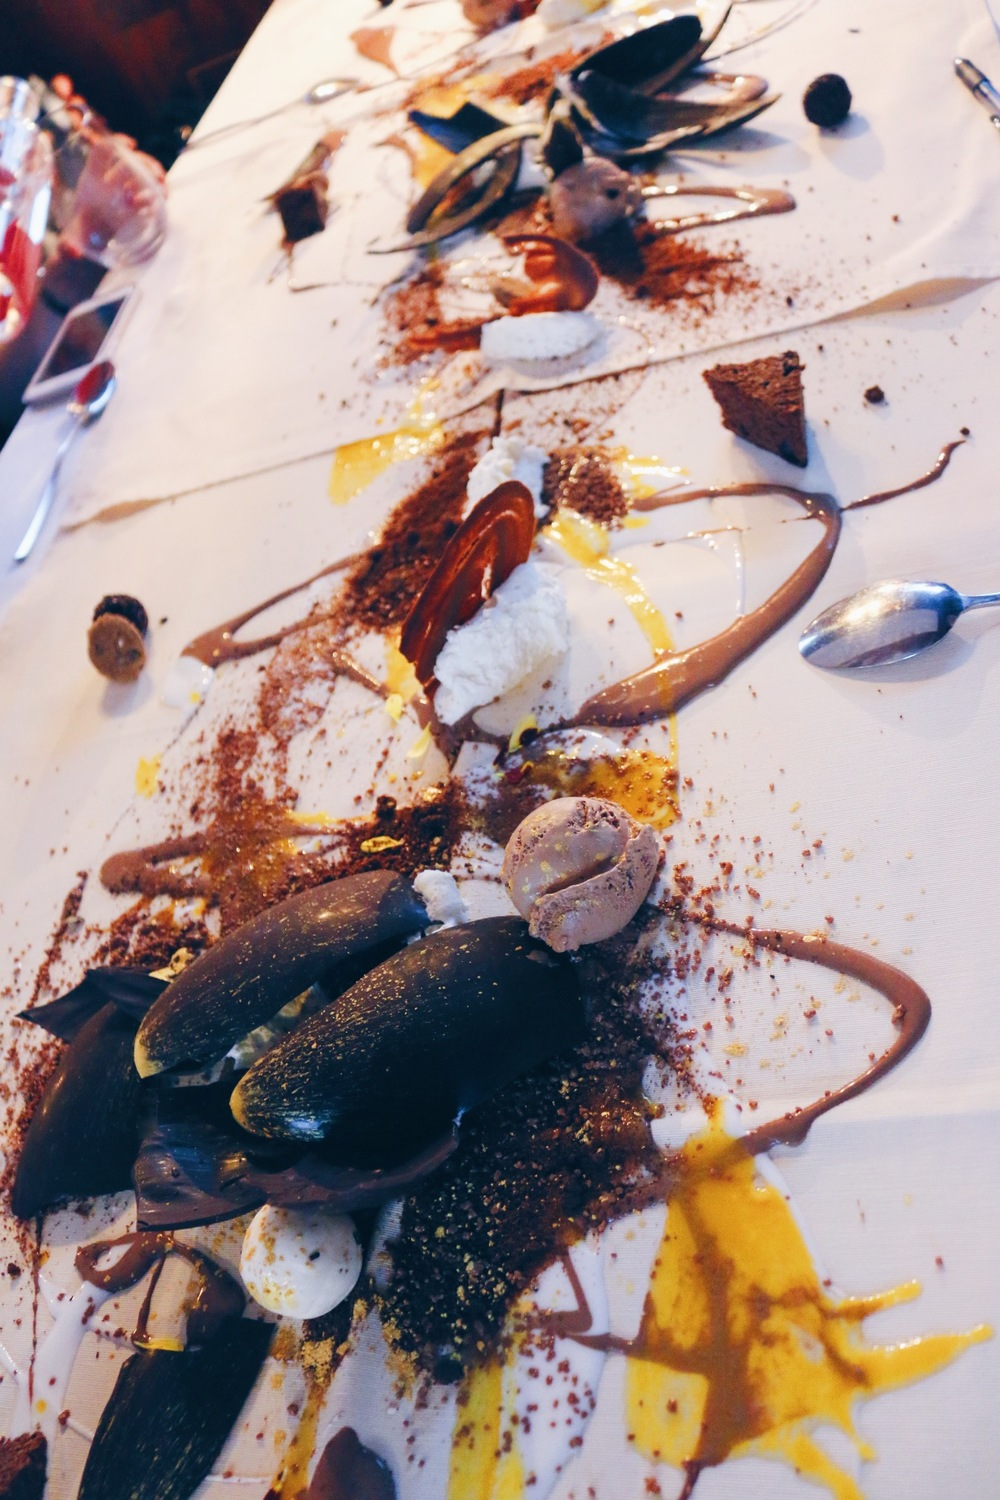 SPECIAL TABLE CLOTHS WERE LAID OUT AND THEN A JACKSON POLLOCK DESSERT CREATION ENSUED (VIDEO BELOW)